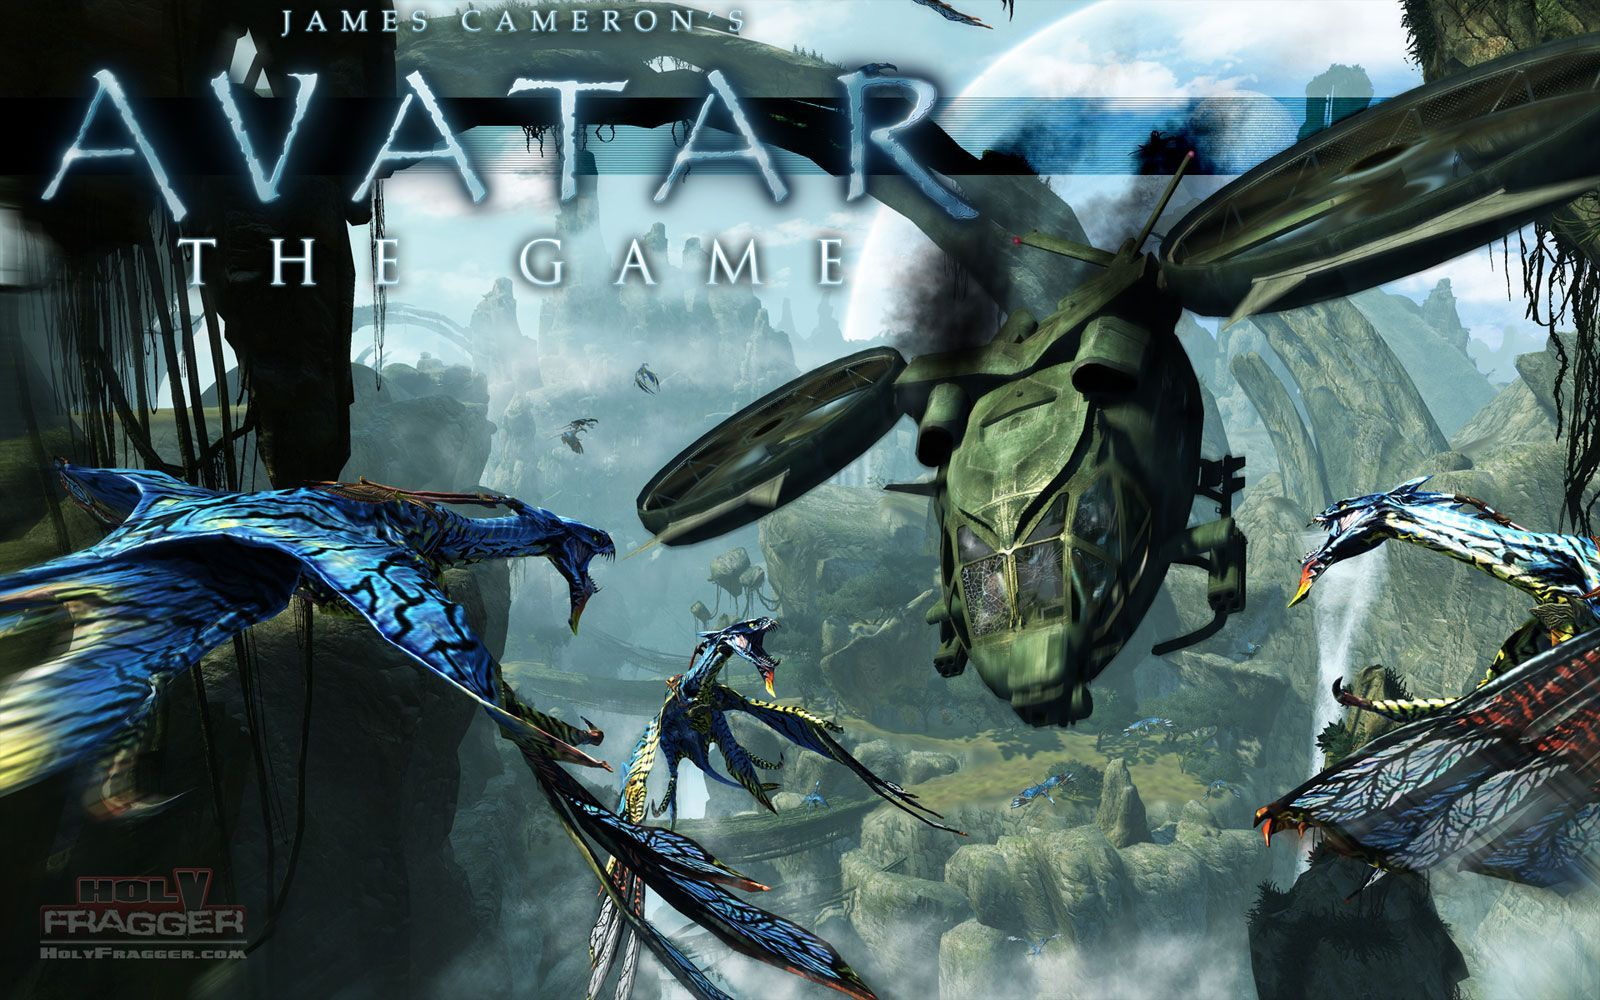 download hd avatar game backgrounds pictures free background with